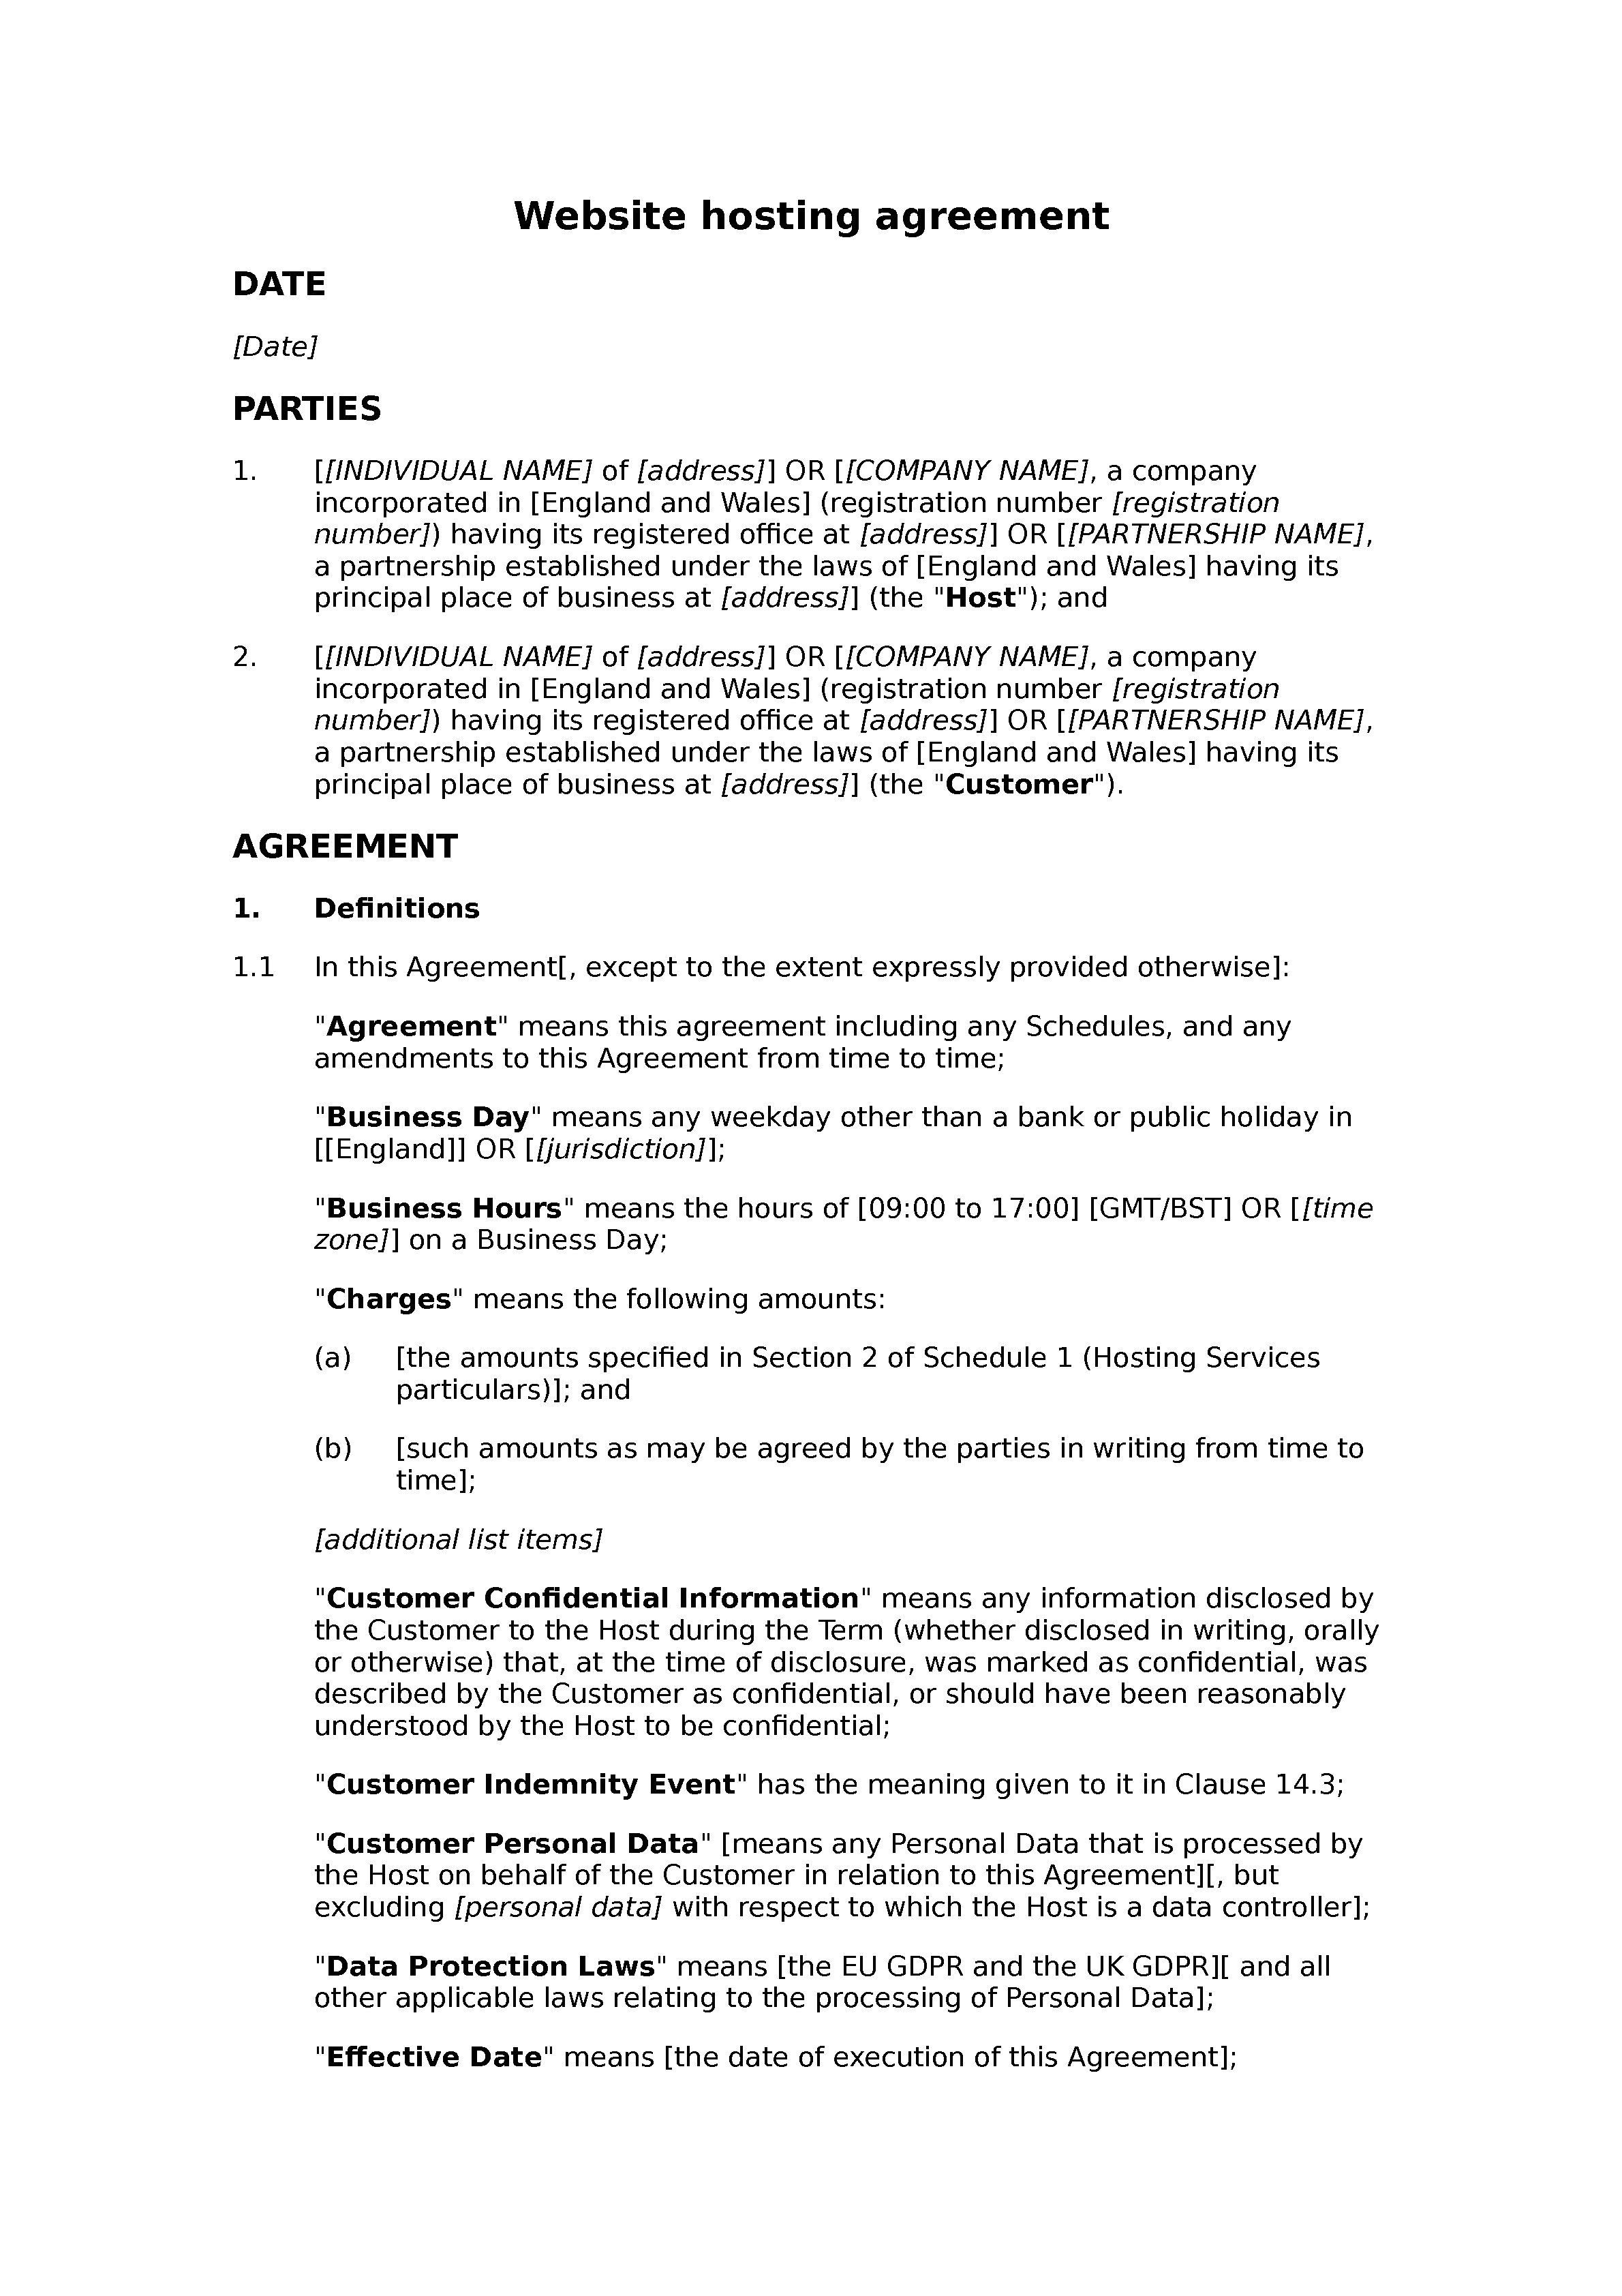 Website hosting agreement document preview